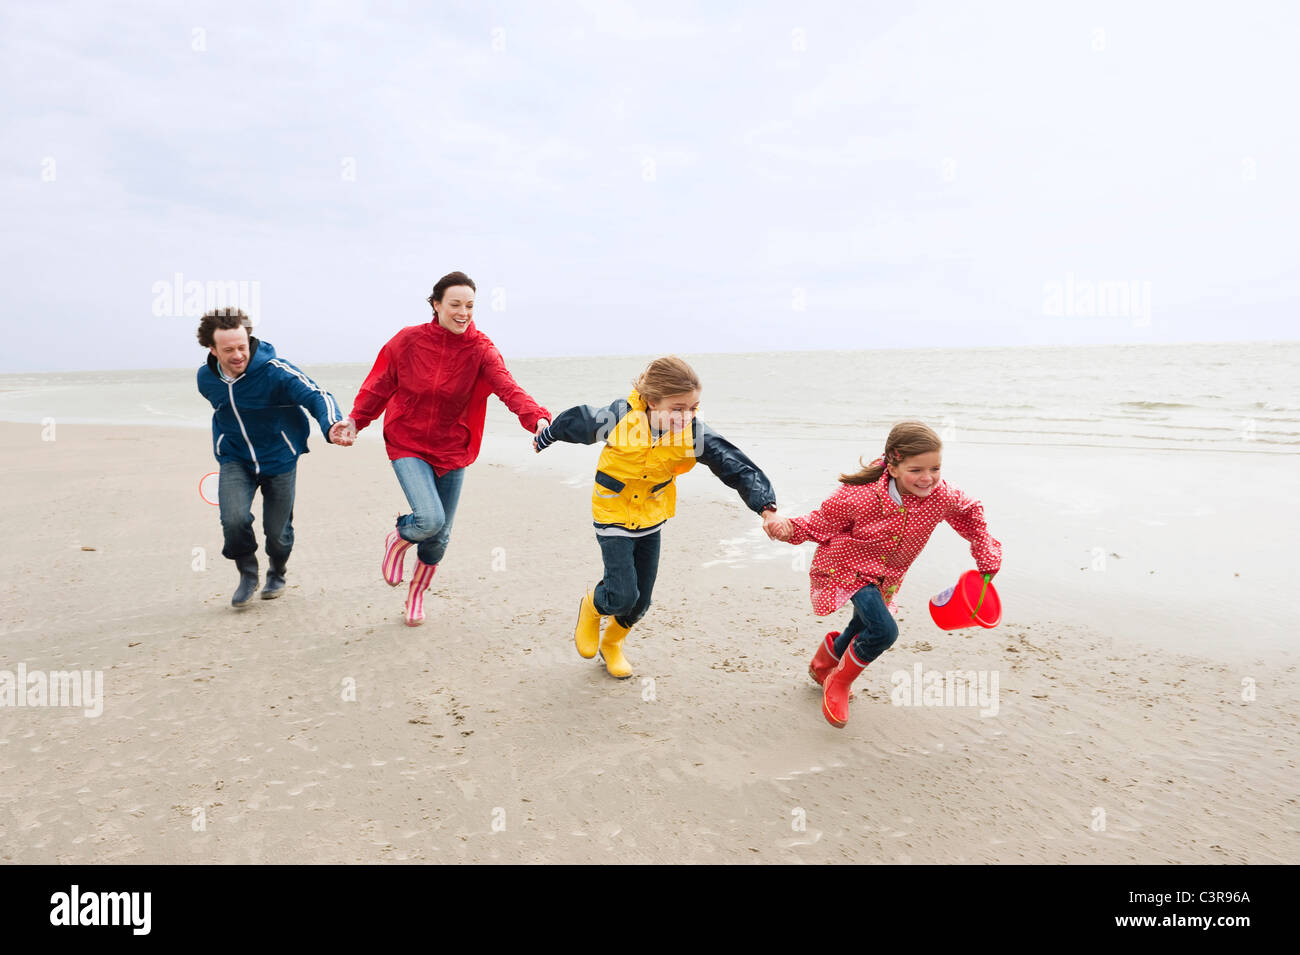 Germany, St. Peter-Ording, North Sea, Family holding hands and running on beach - Stock Image